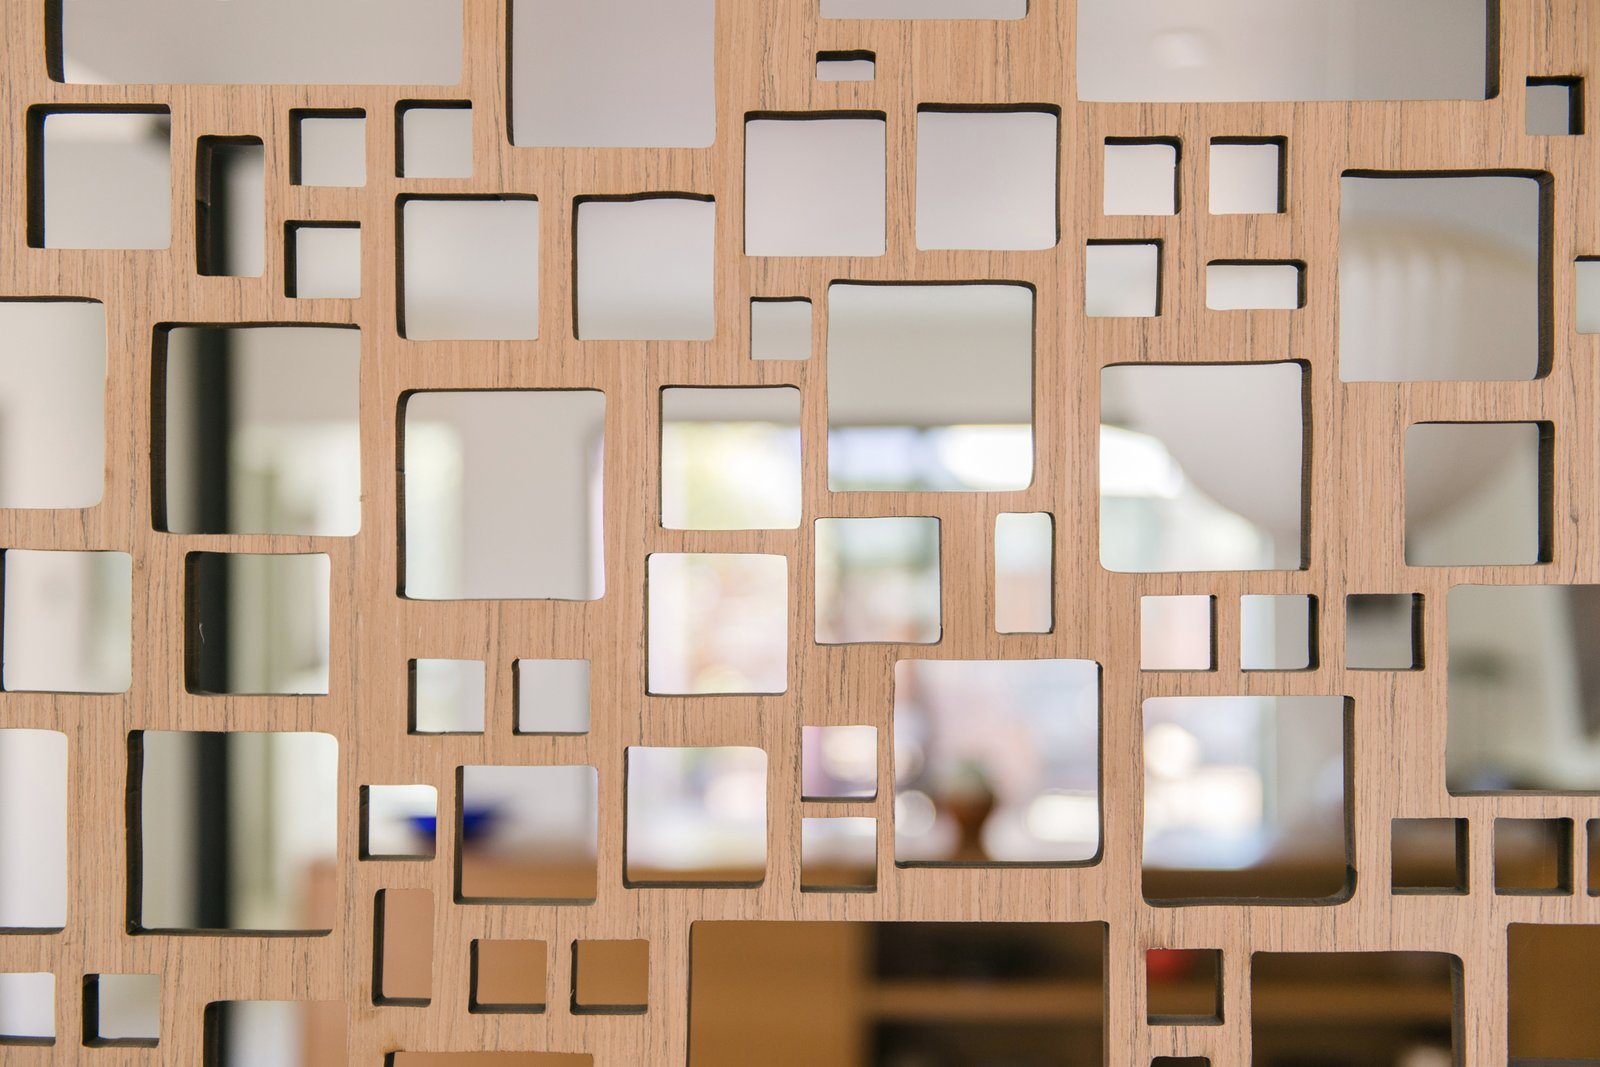 A mid-century inspired wood screen adds a playful geometry and element of privacy at the entry.